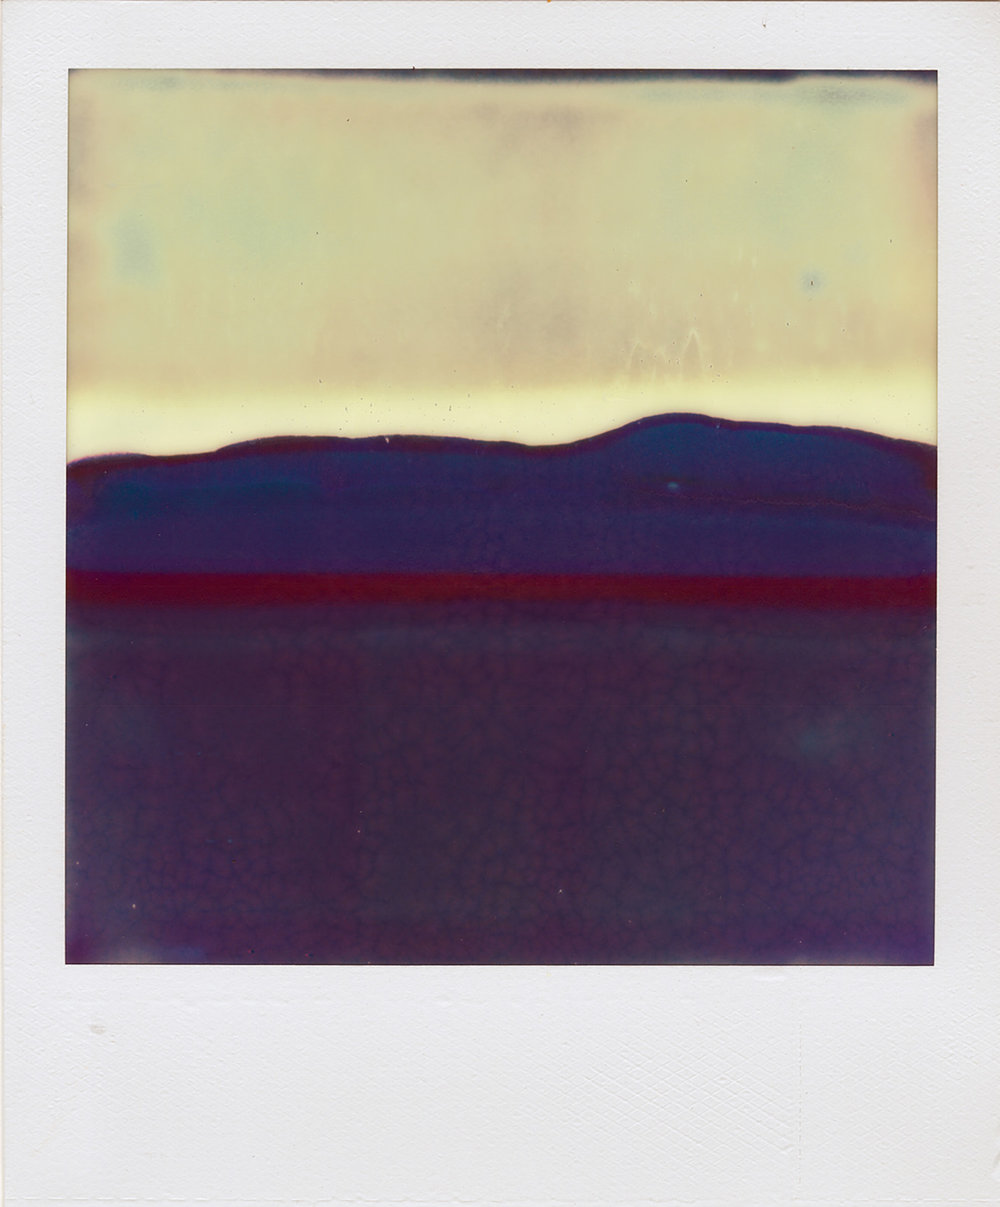 Ruined Polaroid #3